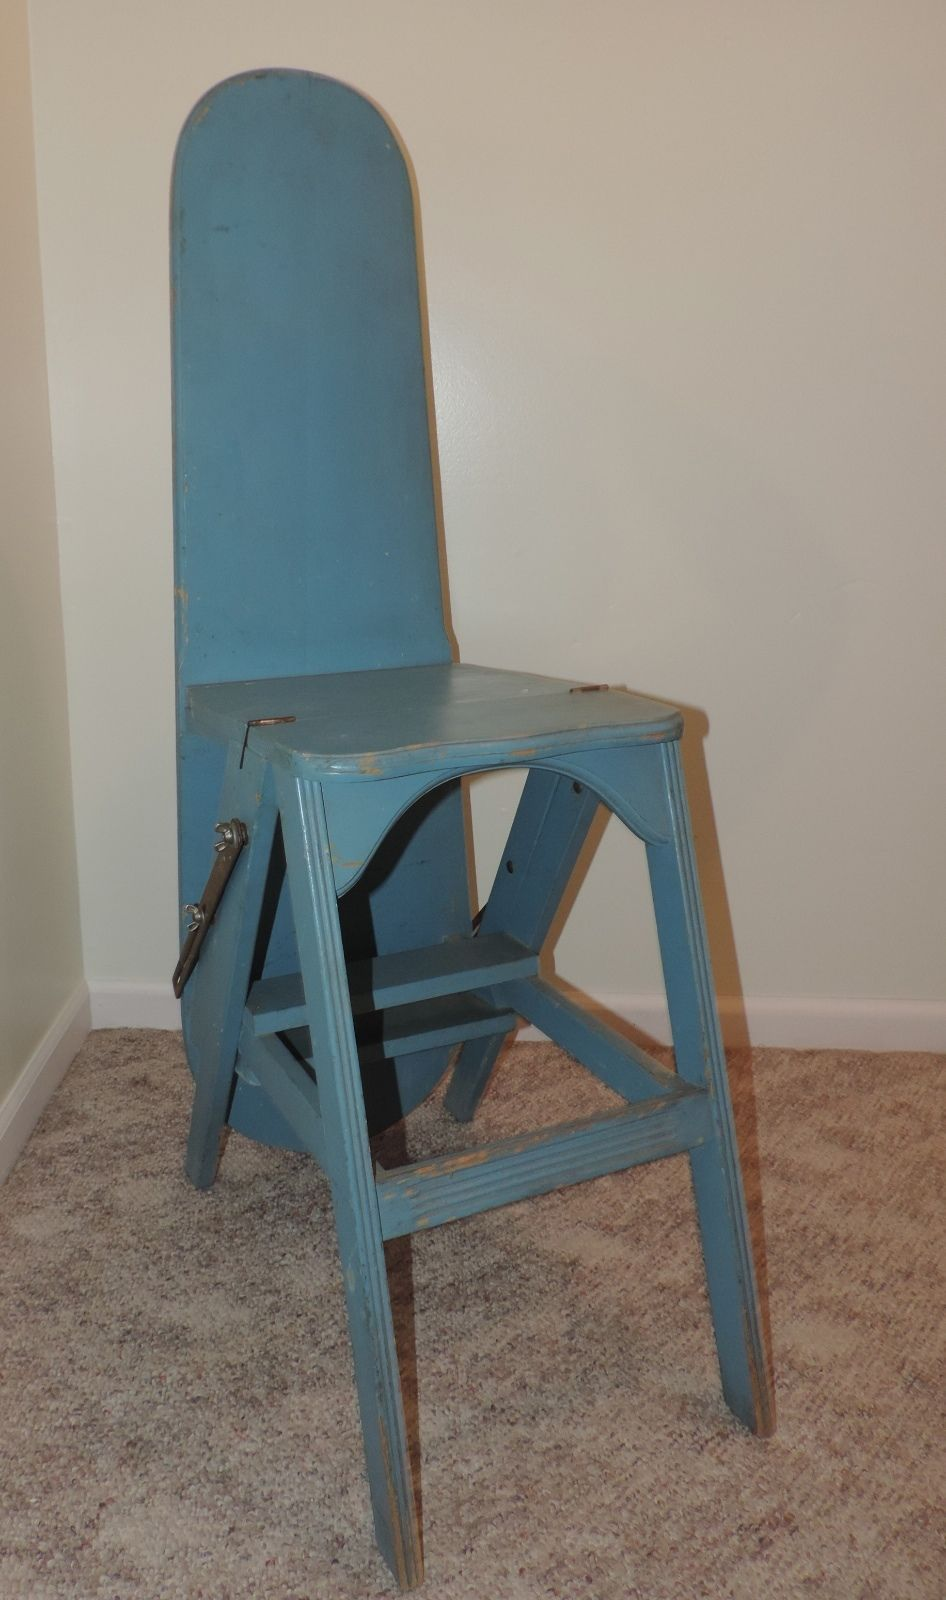 Antique Jefferson Bachelor Chair 3 in 1 Wood Ironing Board Step Stool Blue  Paint Iron Board - Antique Jefferson Bachelor Chair 3 In 1 Wood Ironing Board Step